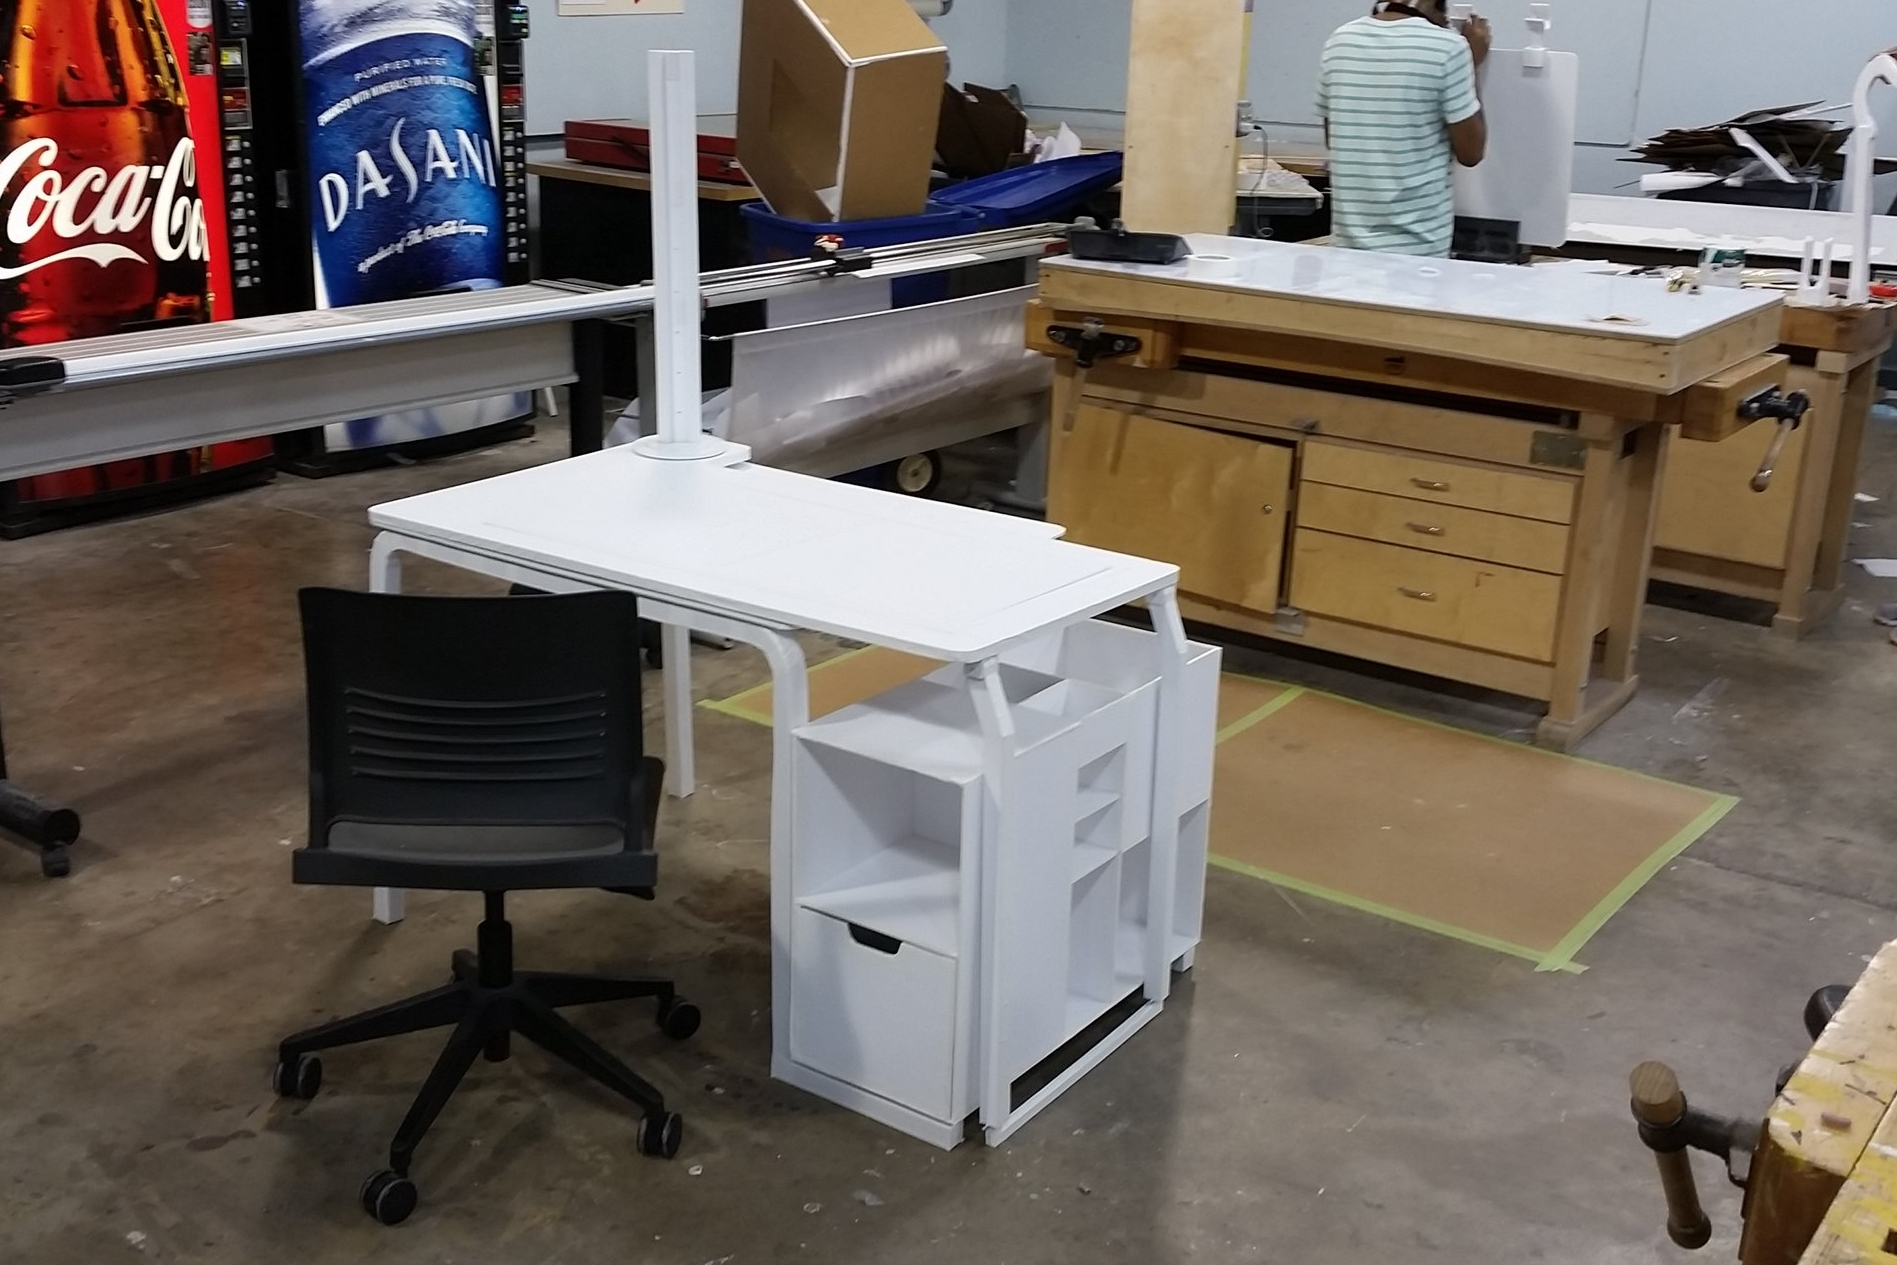 Early foamcore prototype of the Axis Desk.